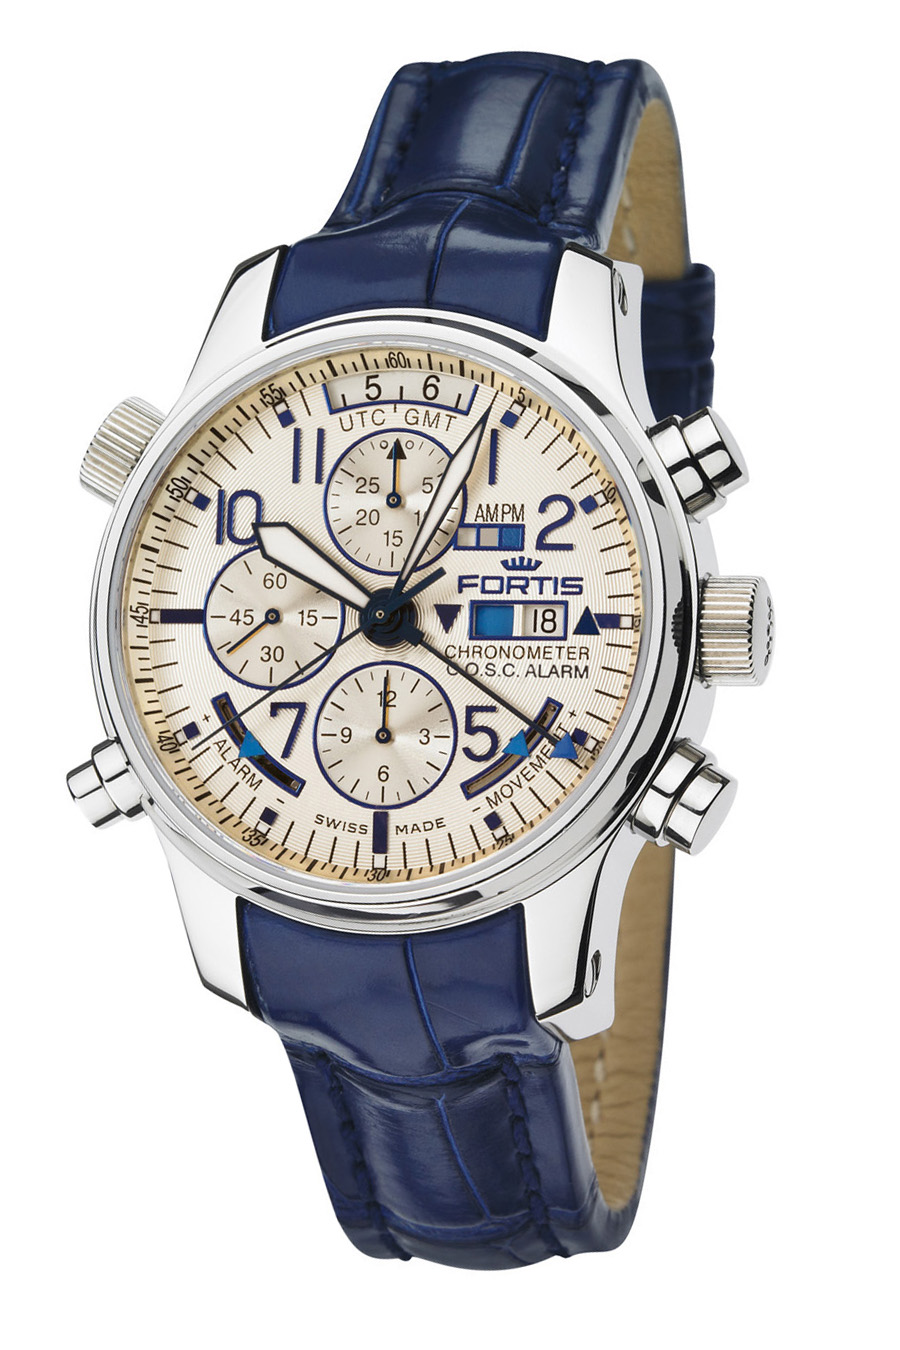 Luxury watches gevril group for Watches expensive